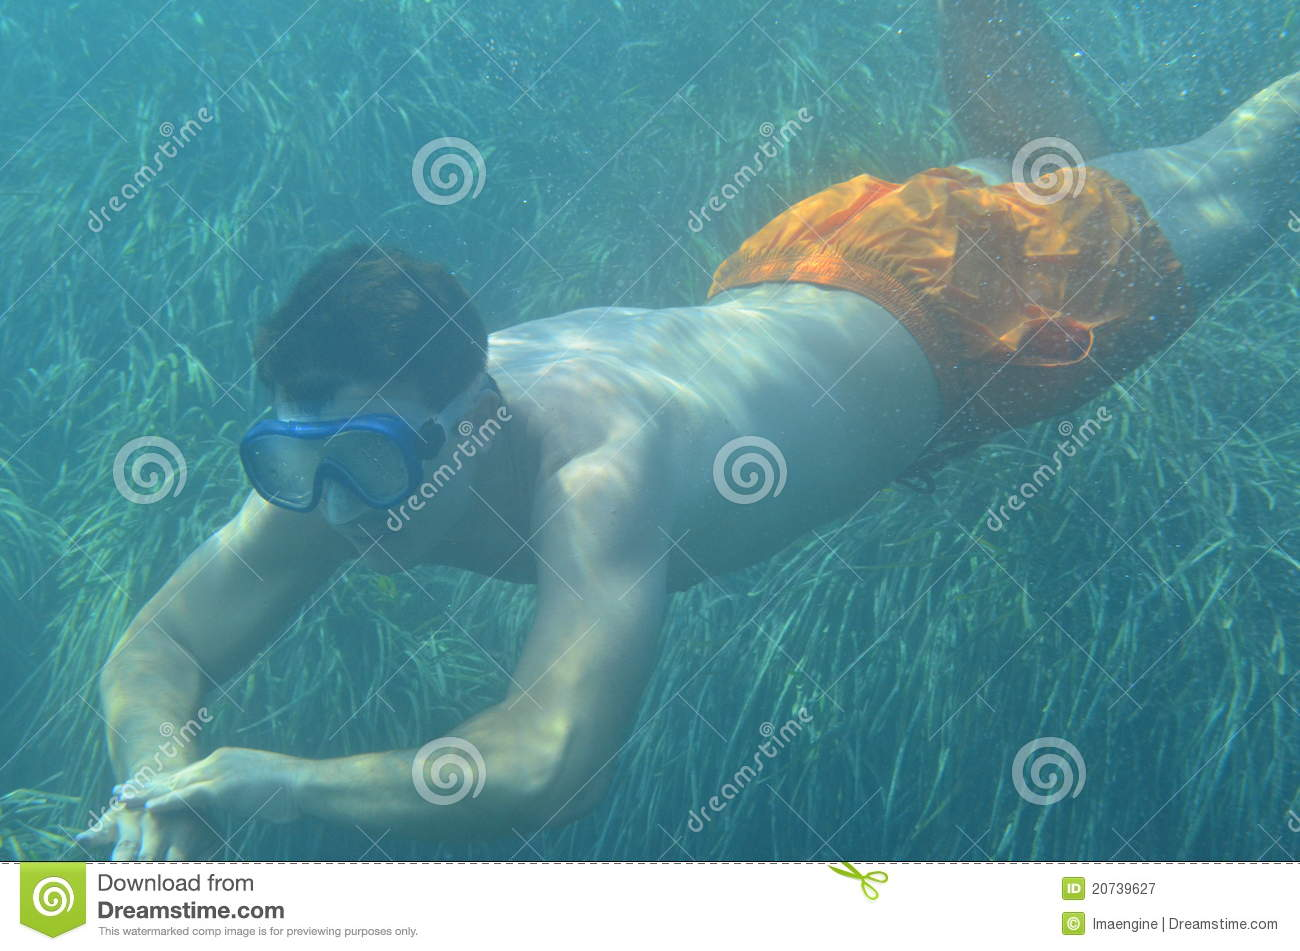 Male underwater images 99